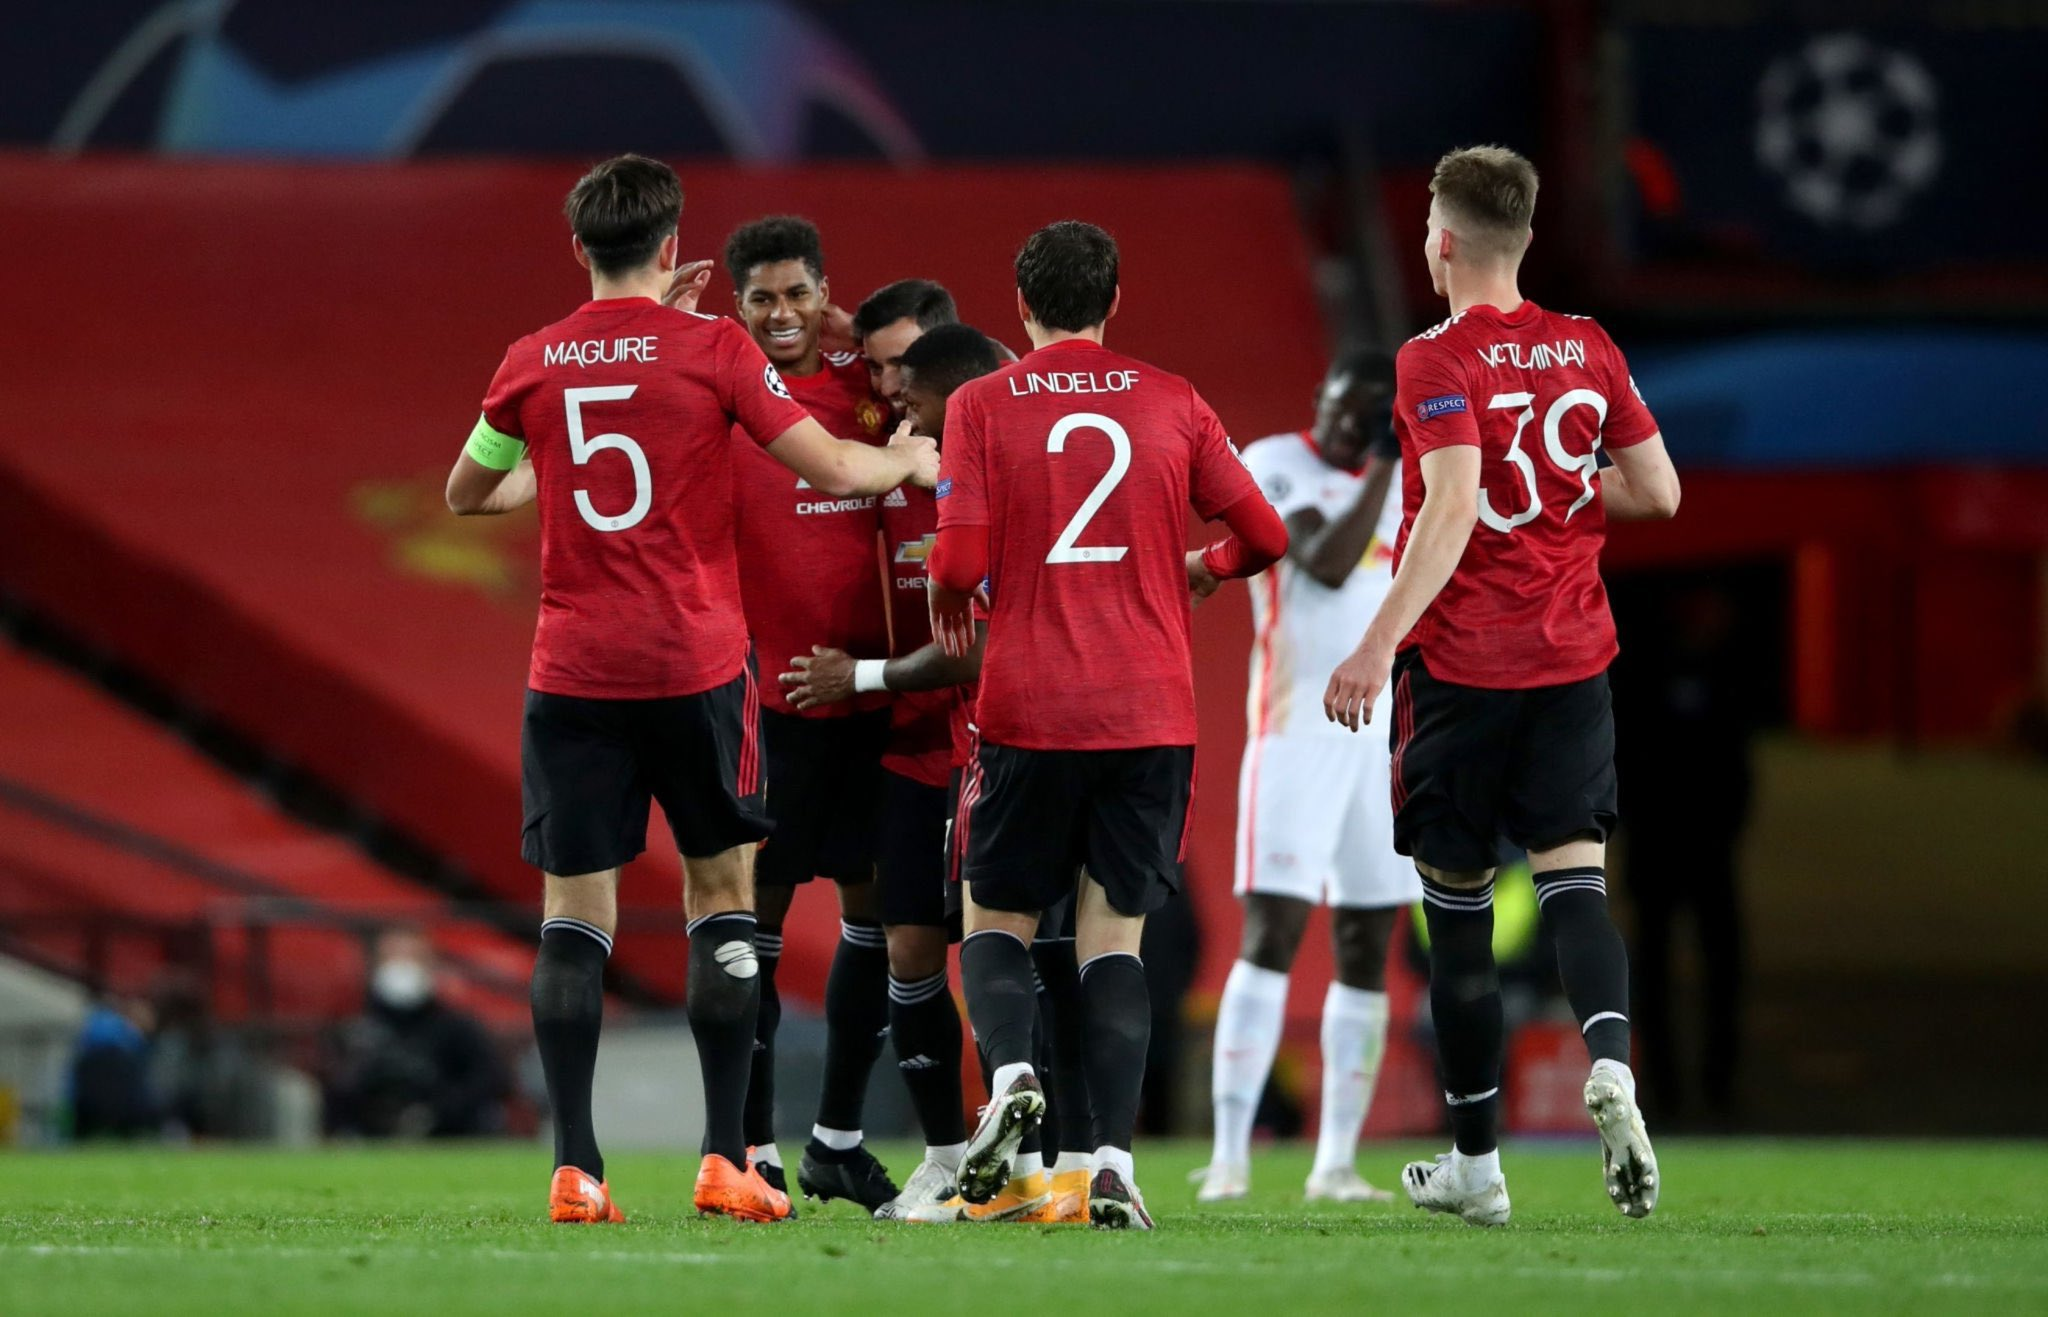 UCL: Ighalo Benched, Rashford Bags Hat-trick In Man United's Thrashing Of Leipzig; Barca Claim Win At Juve